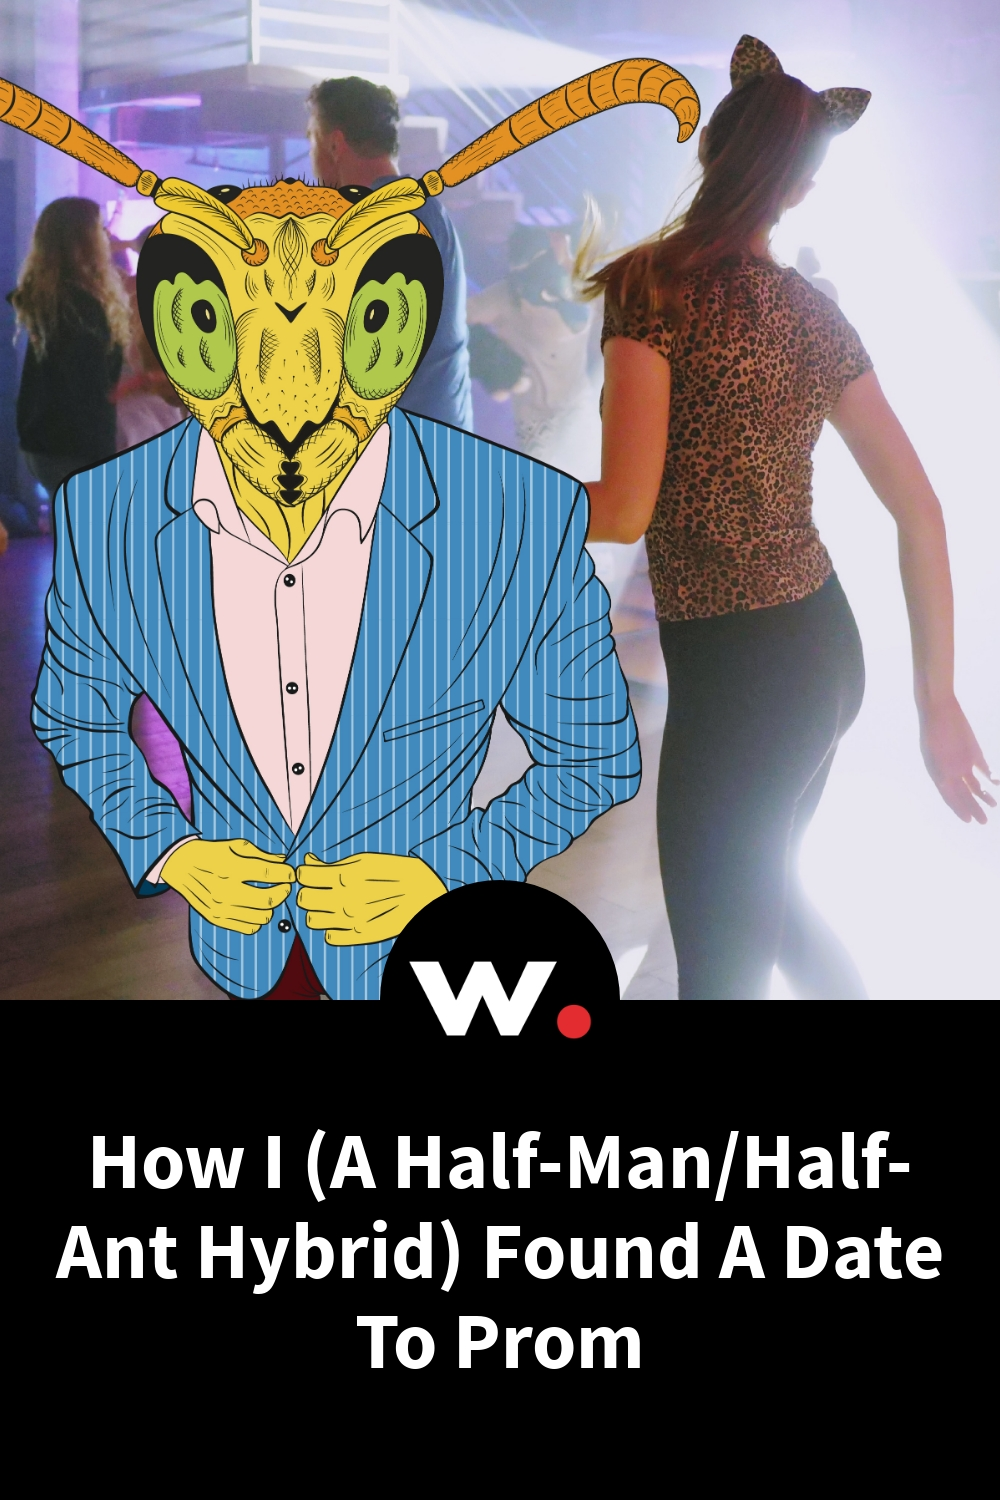 How I (A Half-Man/Half-Ant Hybrid) Found A Date To Prom